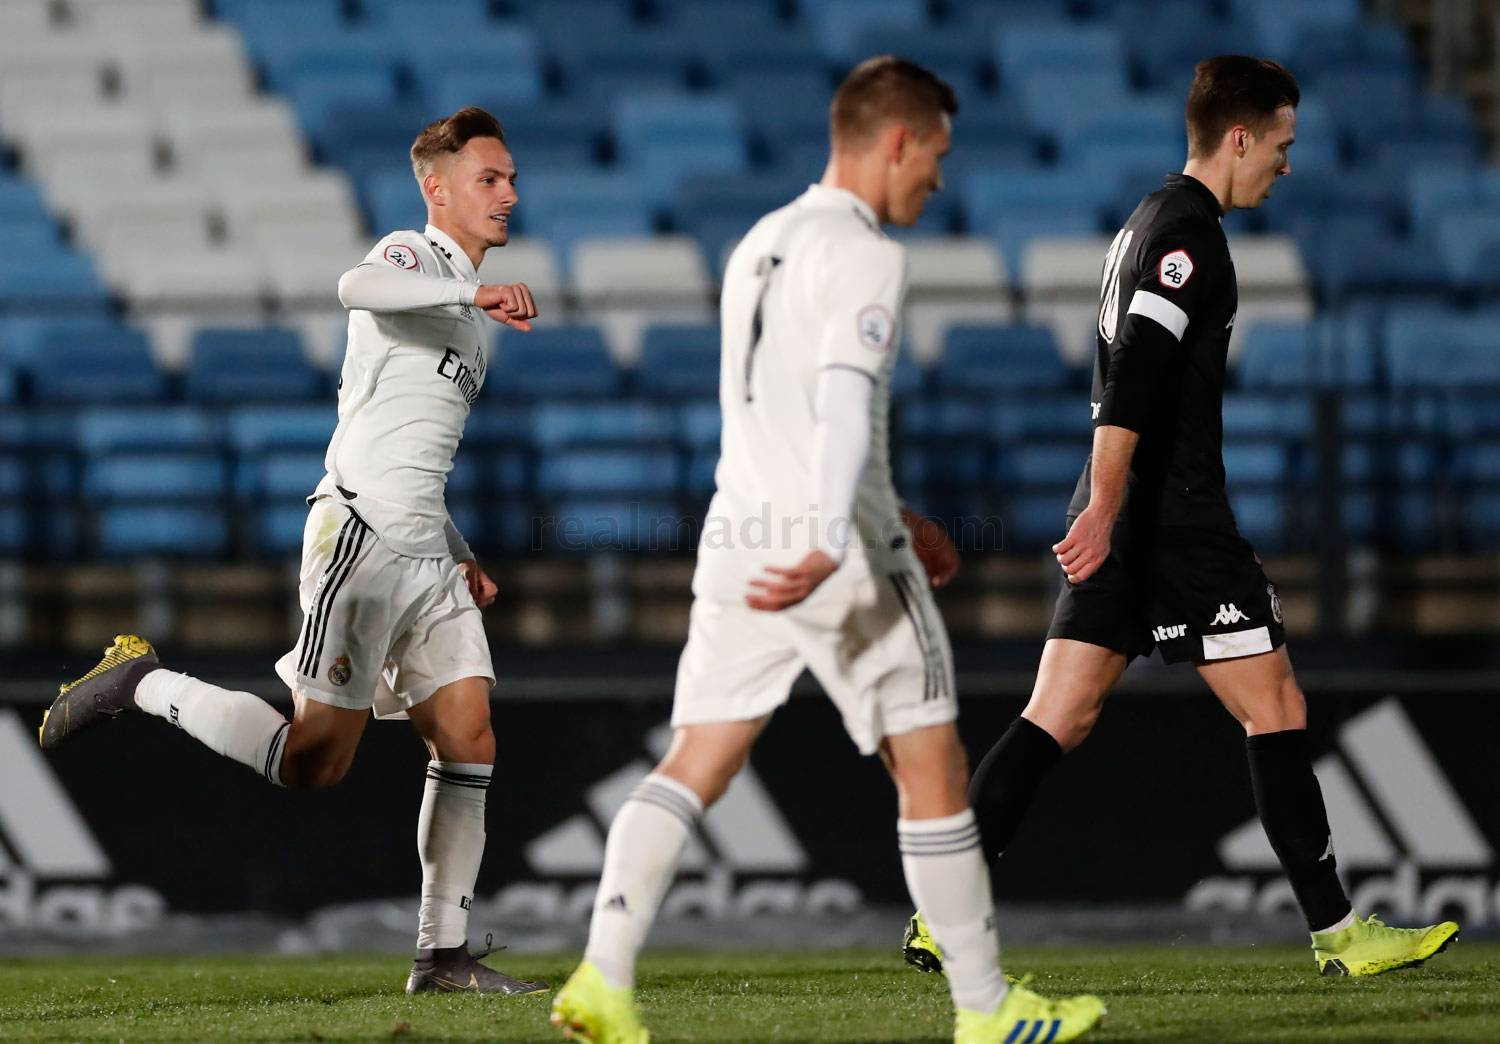 Real Madrid - Real Madrid Castilla - Cultural Leonesa - 10-02-2019